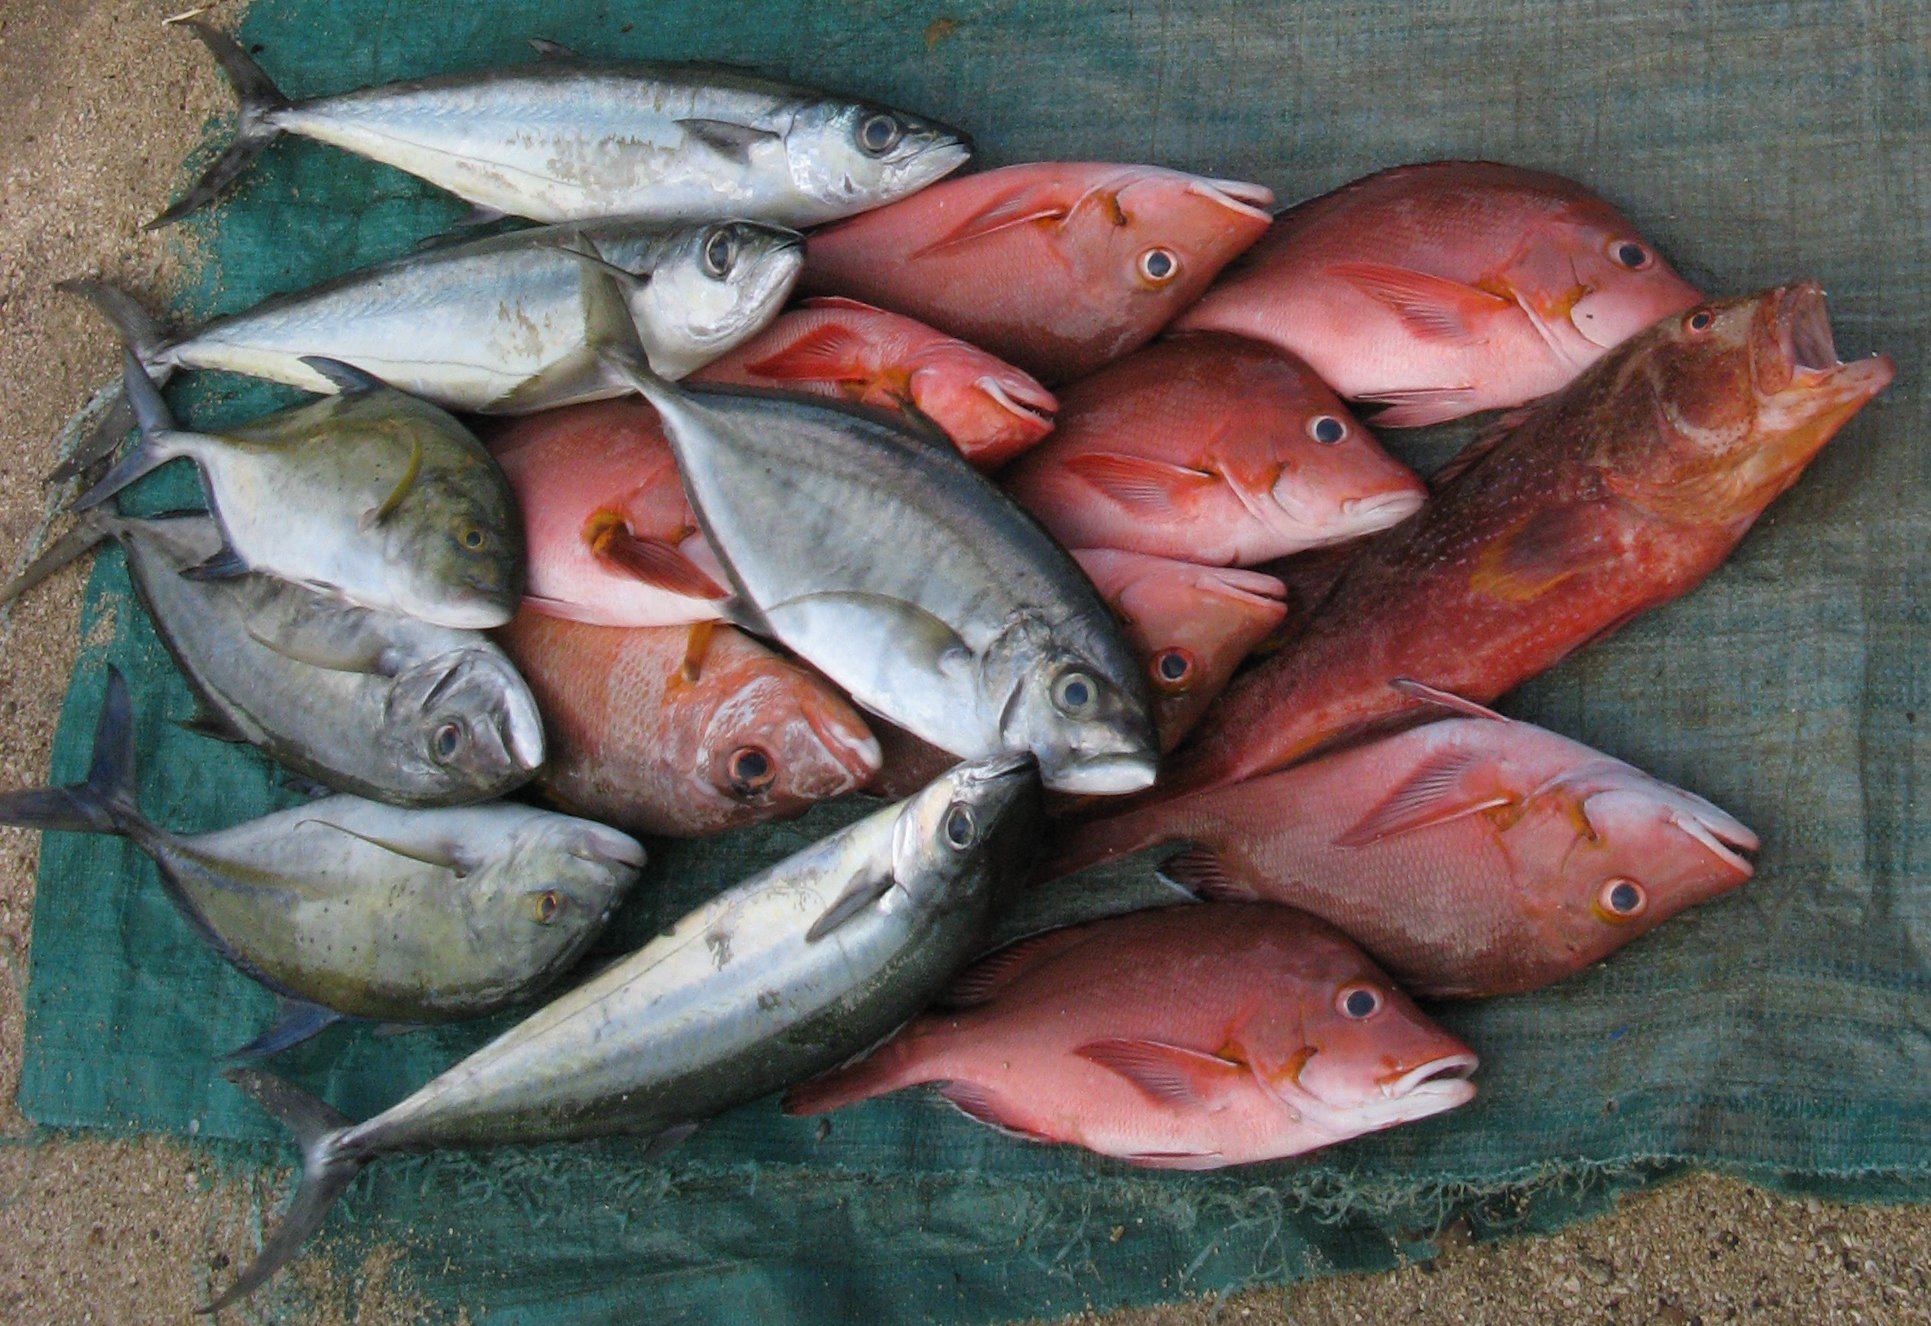 Reef fishes on sale in Gizo Market